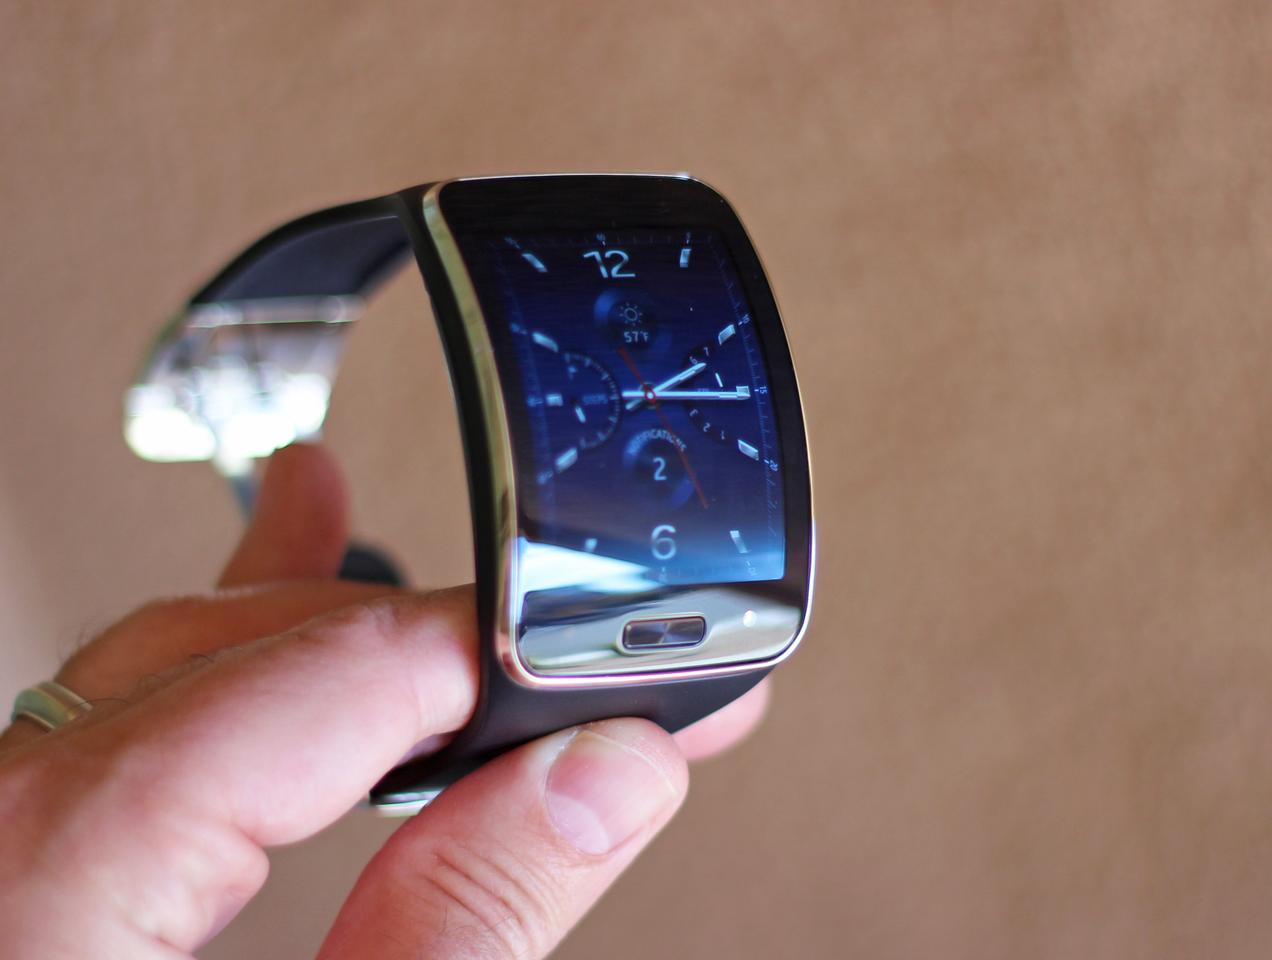 The Samsung Gear S (Photo: Will Shanklin/Gizmag.com)